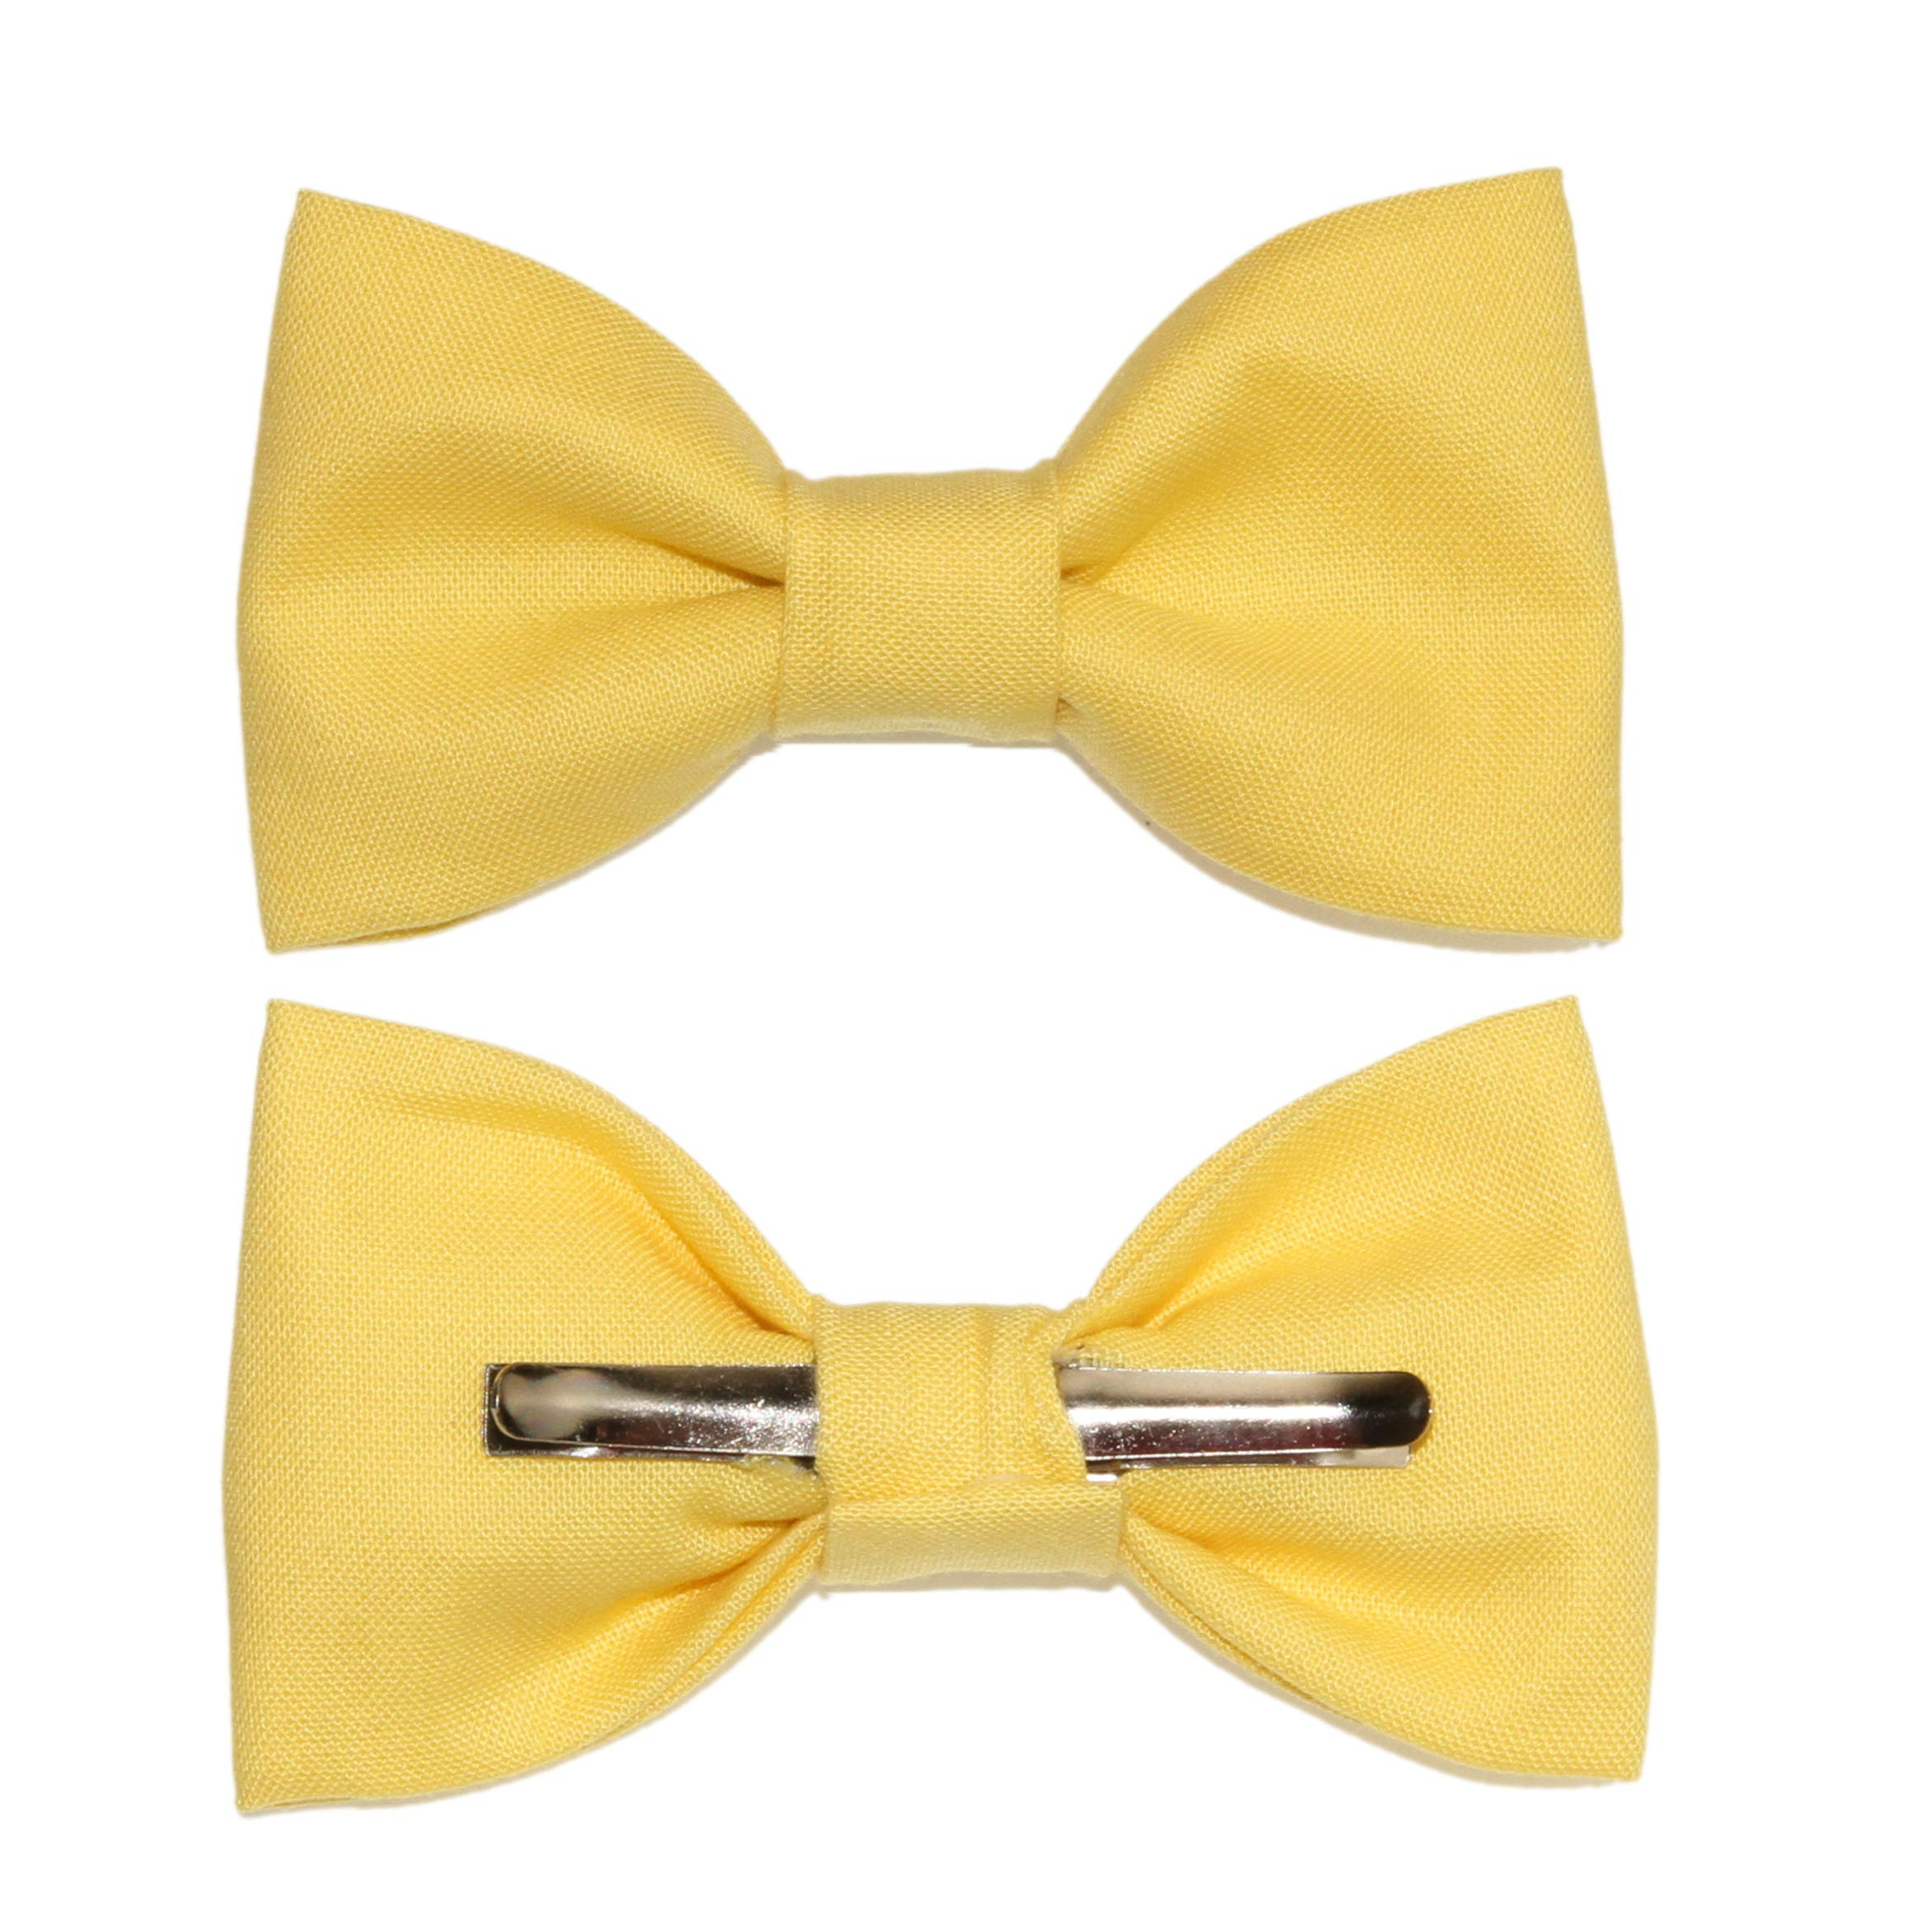 Toddler Boy 3T 4T Yellow Clip On Cotton Bow Tie - Made in USA